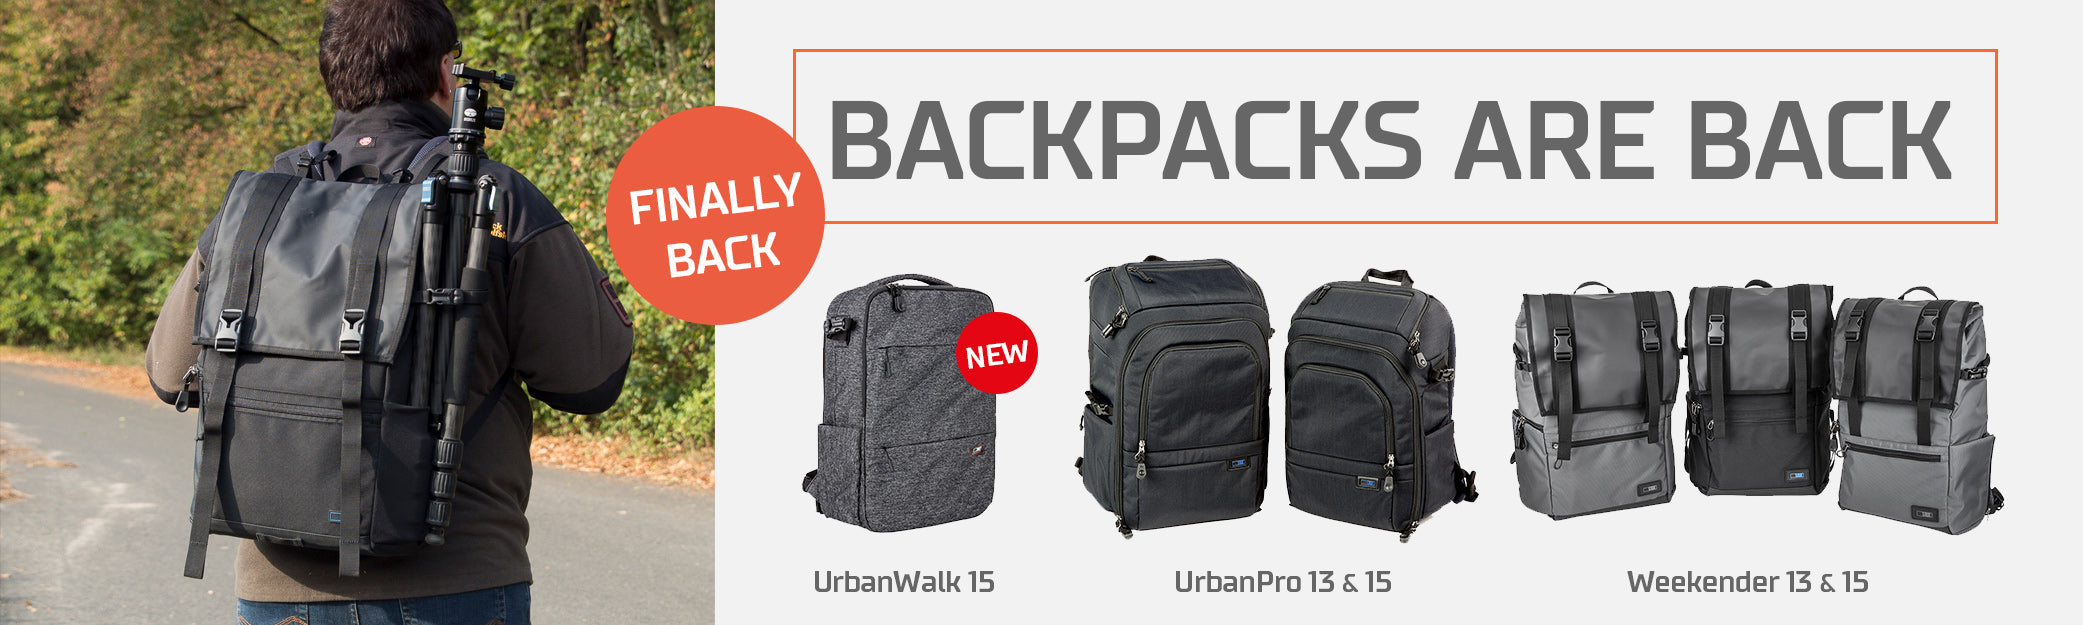 SIRUI BackPacks / Rucksack are back